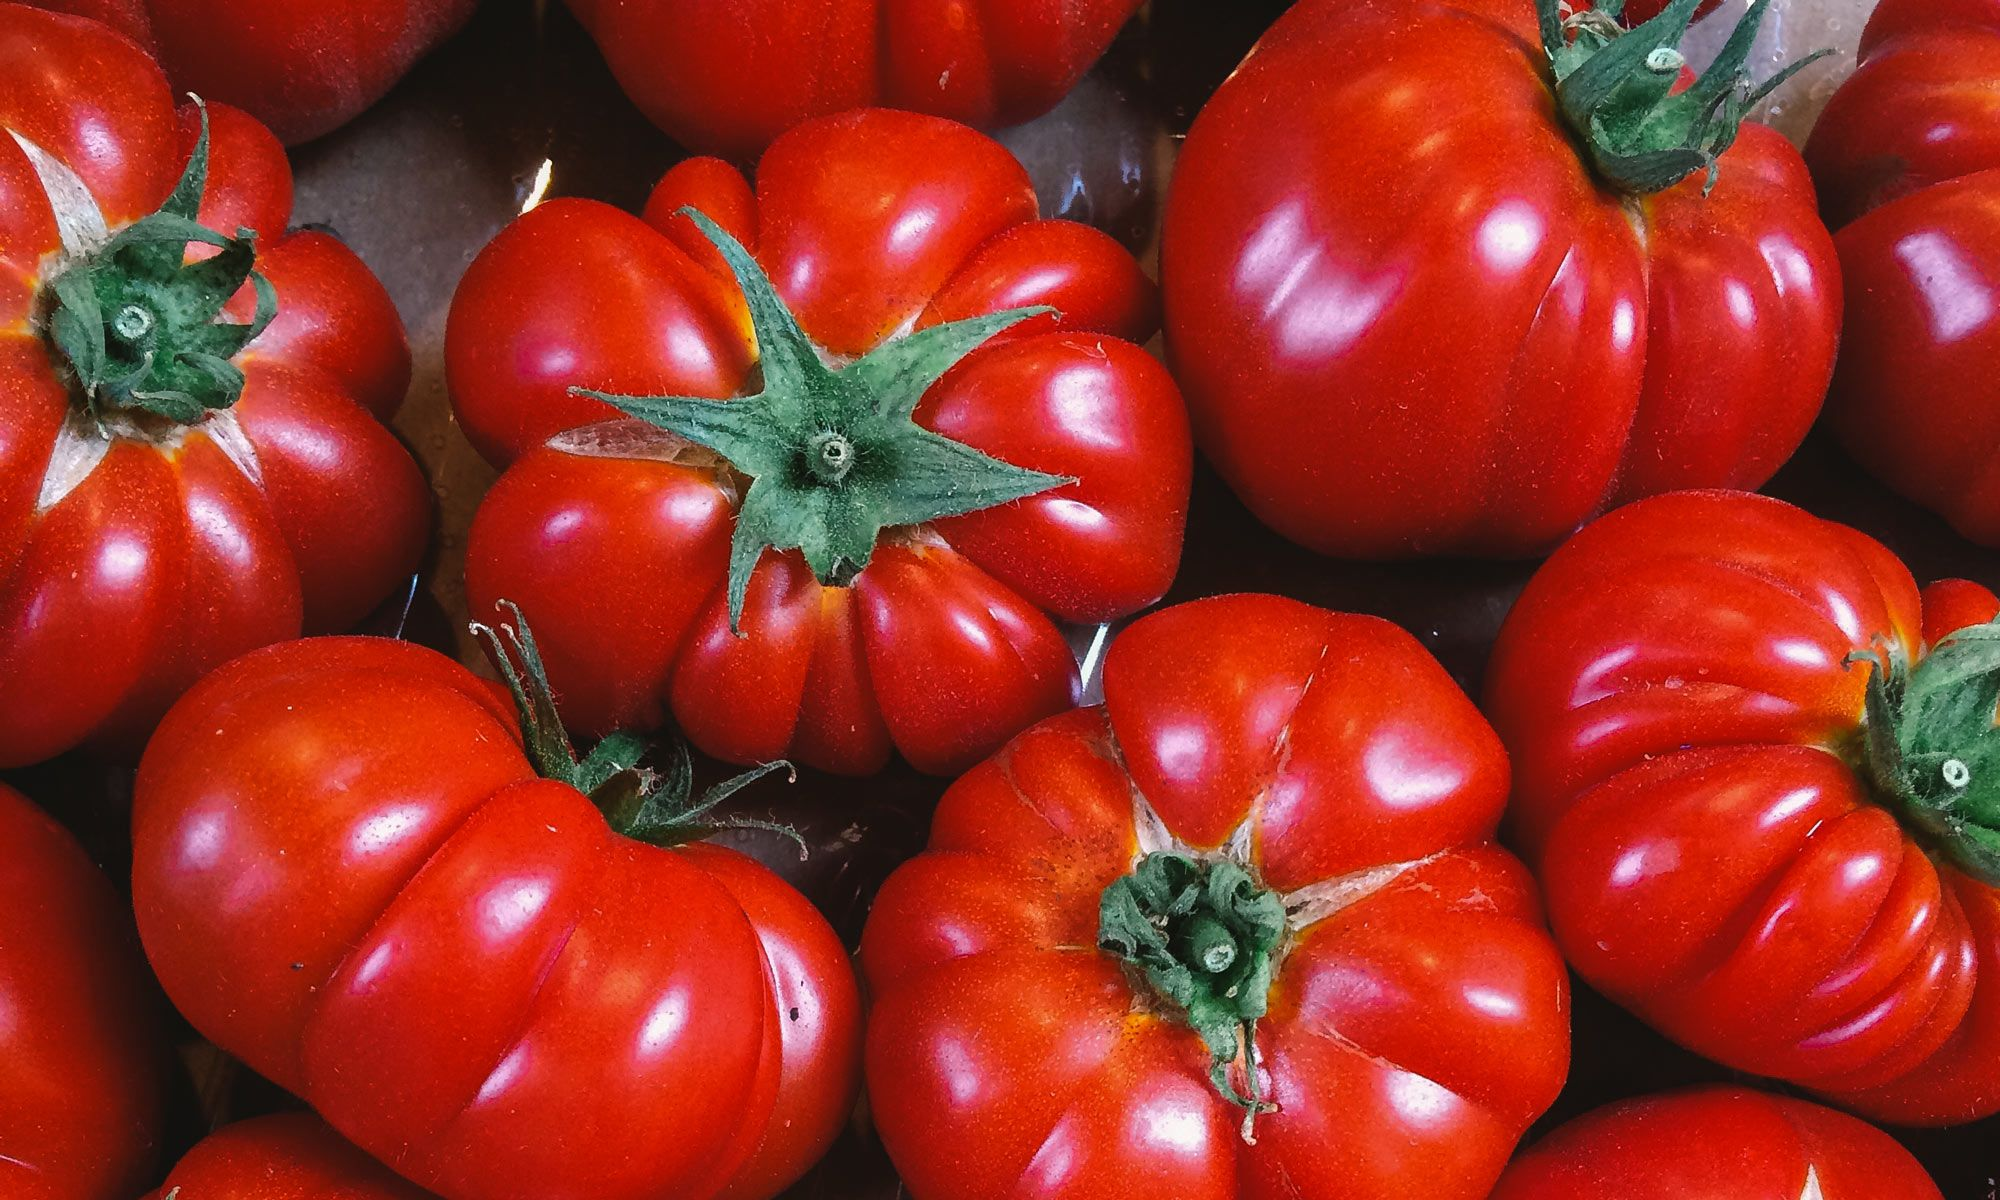 What genetic engineering and organic farming have in common